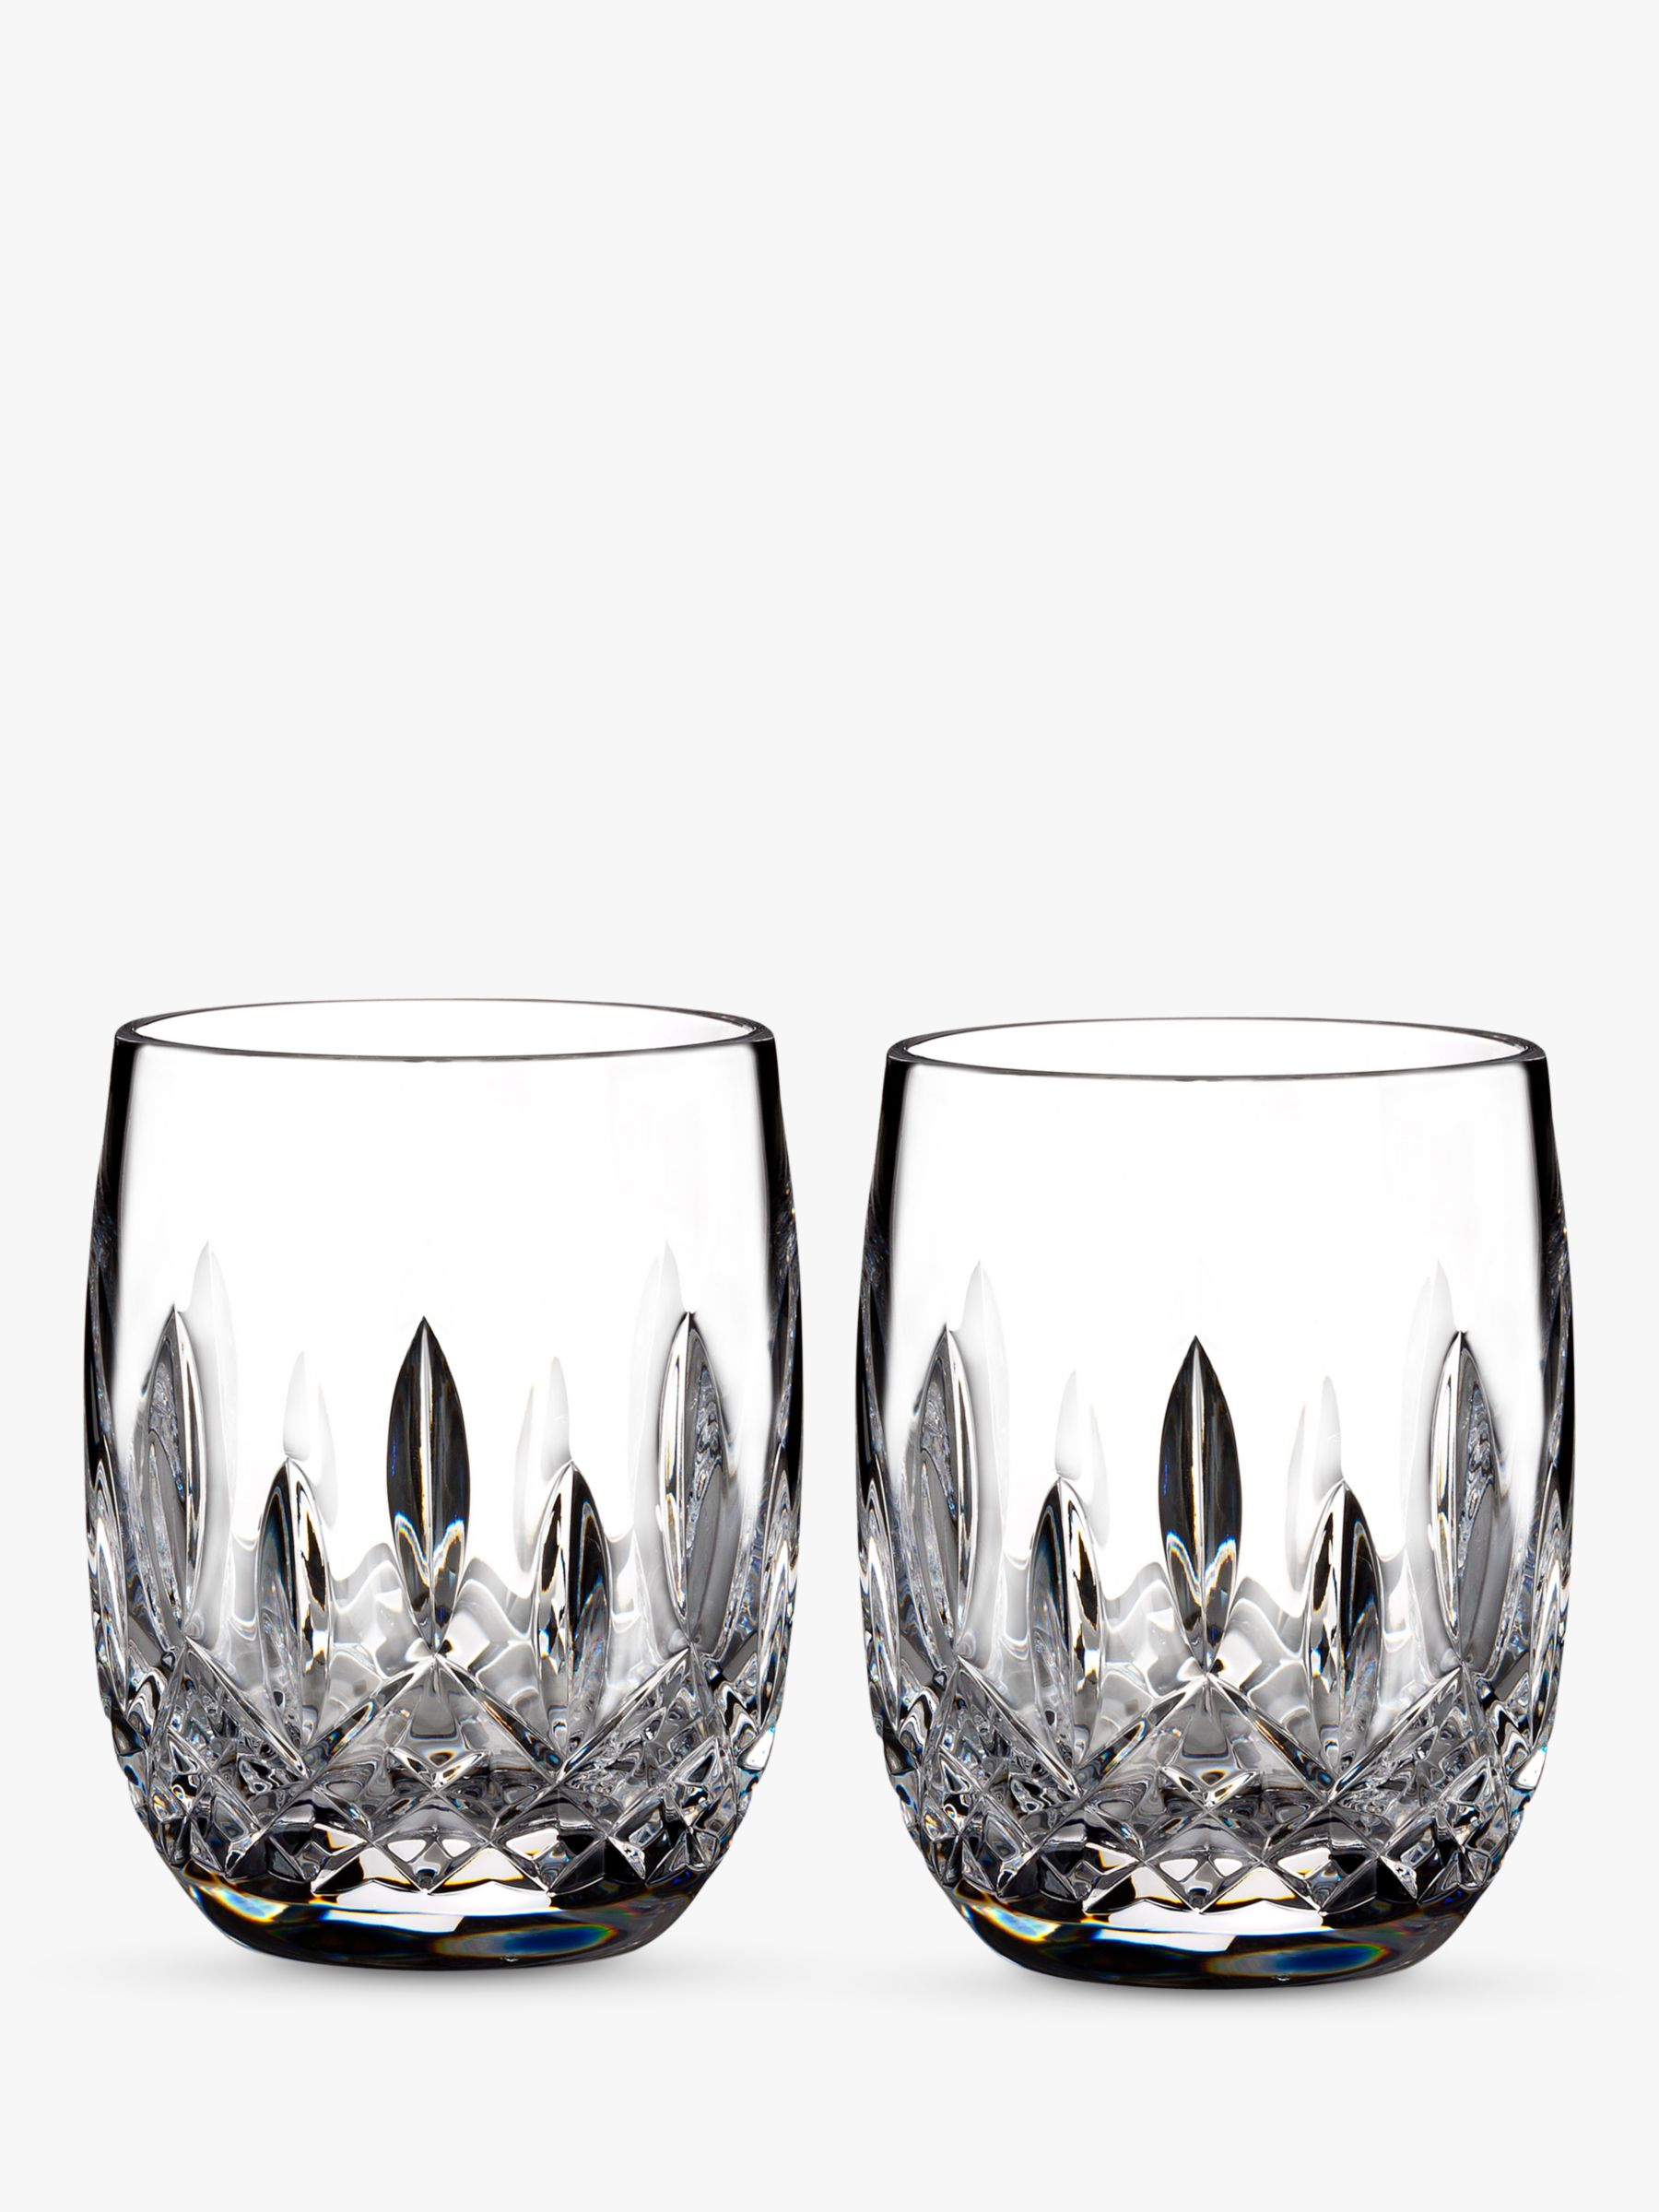 Waterford Waterford Lismore Connoisseur Rounded Crystal Glass Whisky Tumblers, 207ml, Set of 2